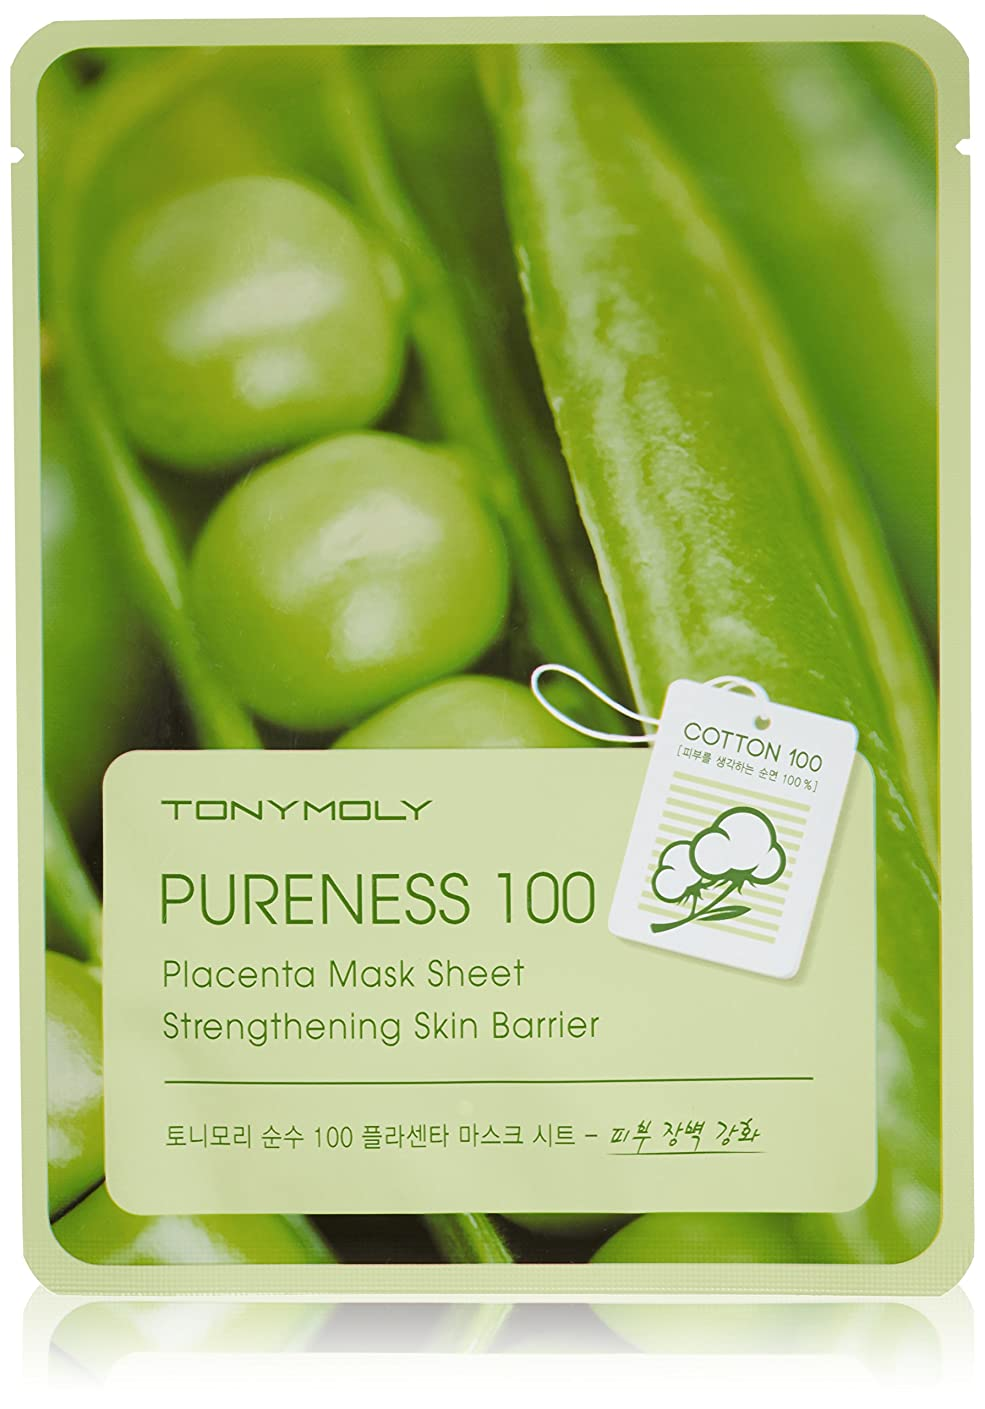 ぎこちないファントムマークTONYMOLY Pureness 100 Placenta Mask Sheet Strengthening Skin Barrier (並行輸入品)